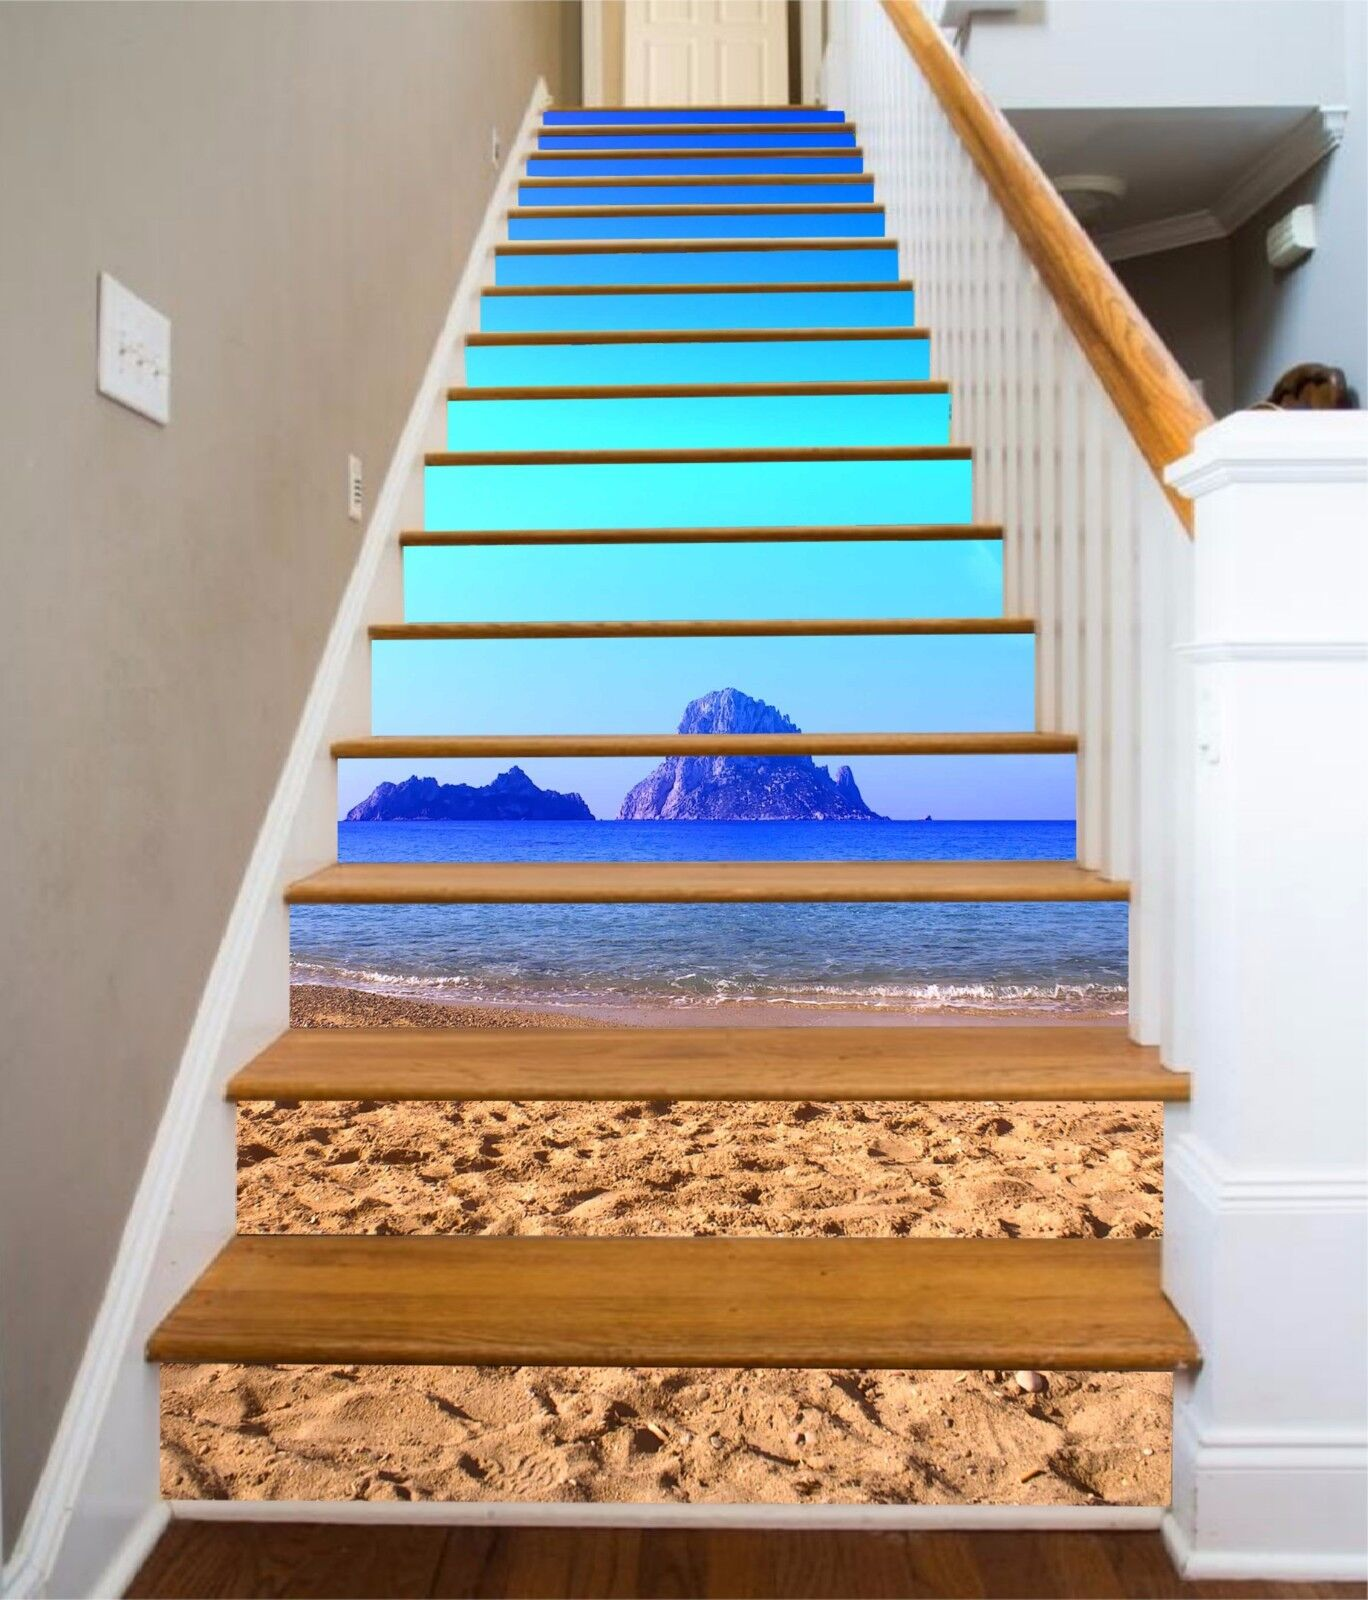 3D bluee Beach 7 Stair Risers Decoration Photo Mural Vinyl Decal Wallpaper UK